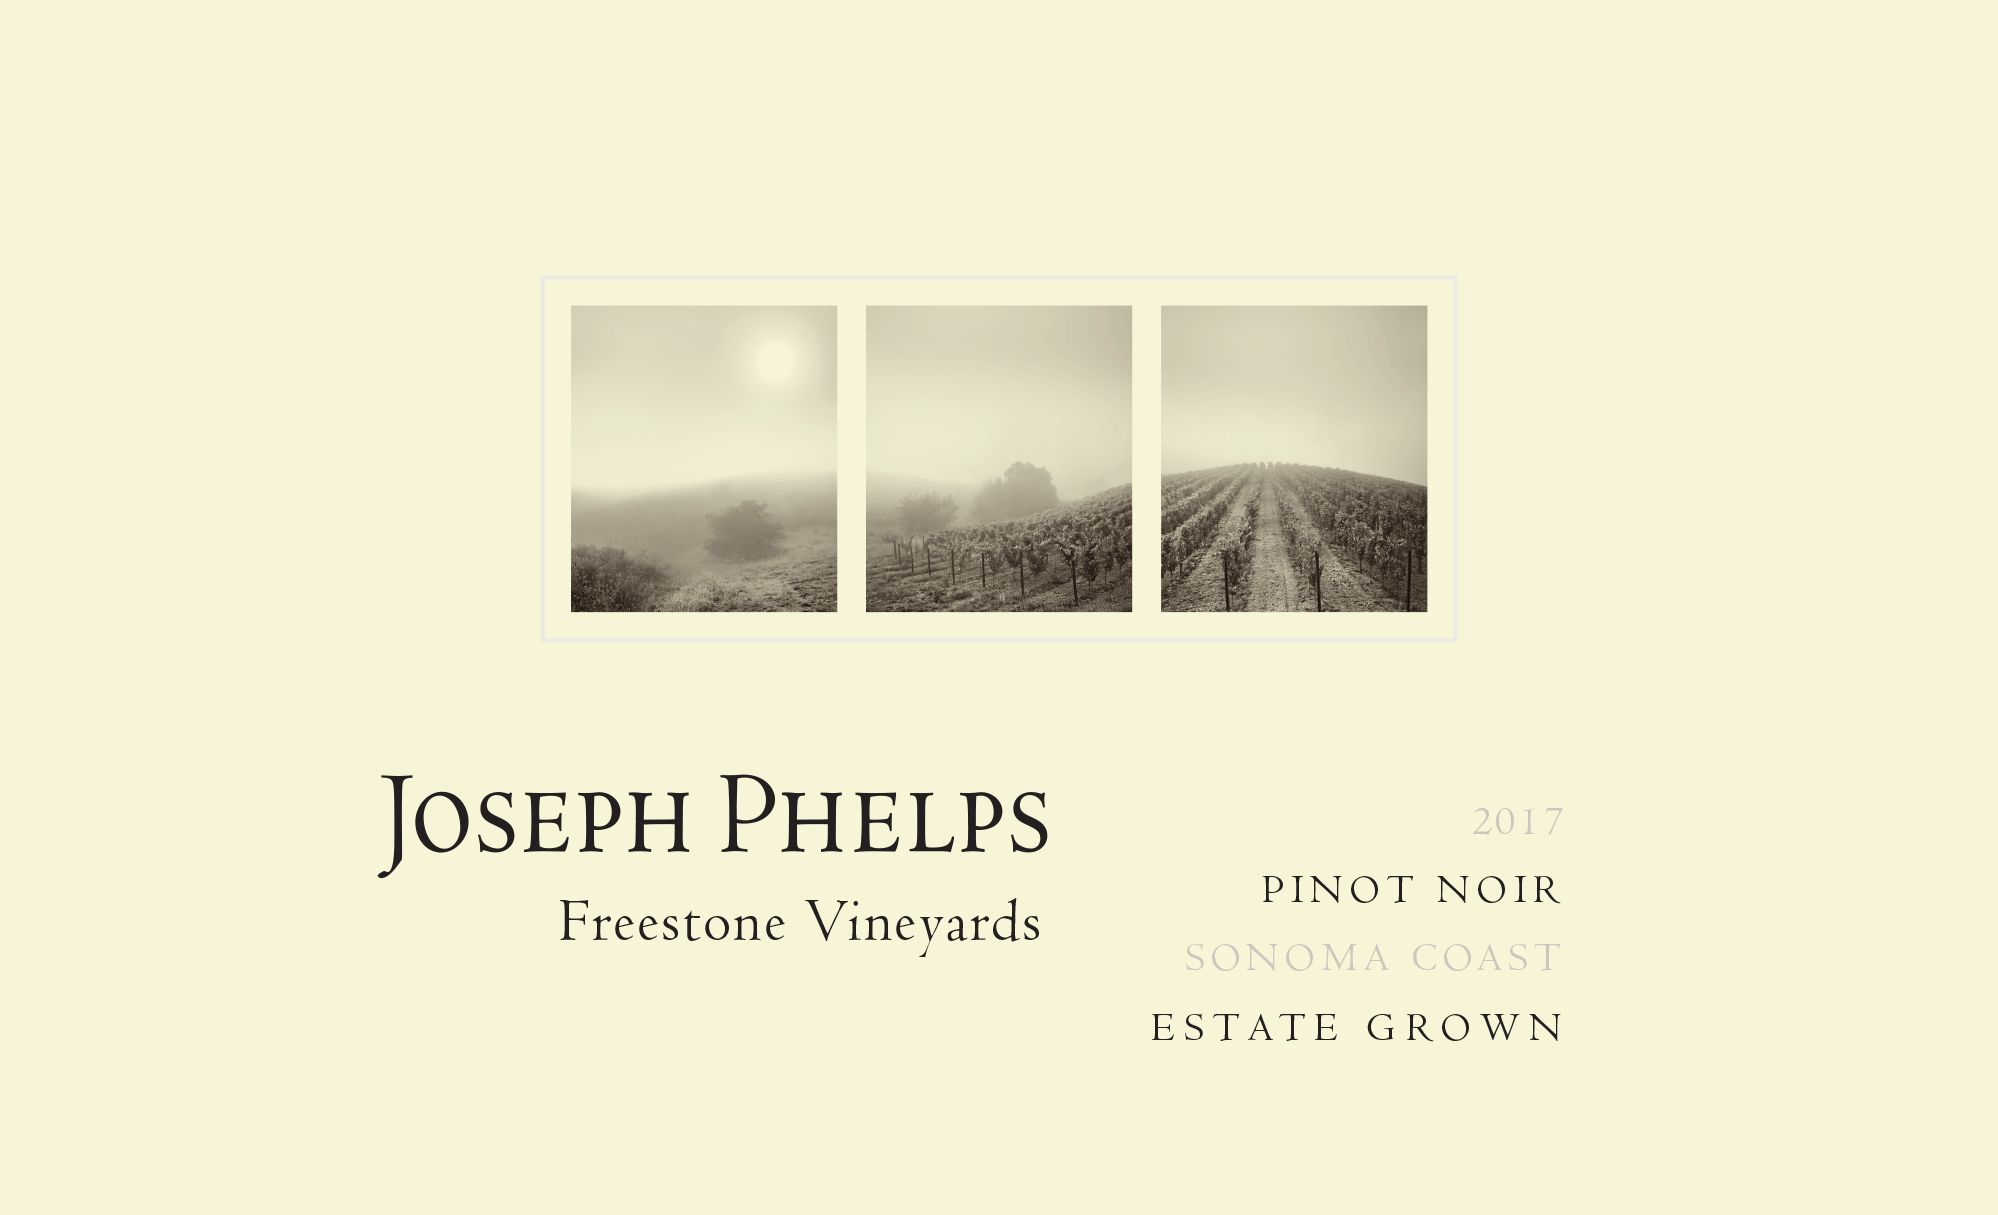 Joseph Phelps Freestone Vineyards Sonoma Coast Pinot Noir 2017  Front Label